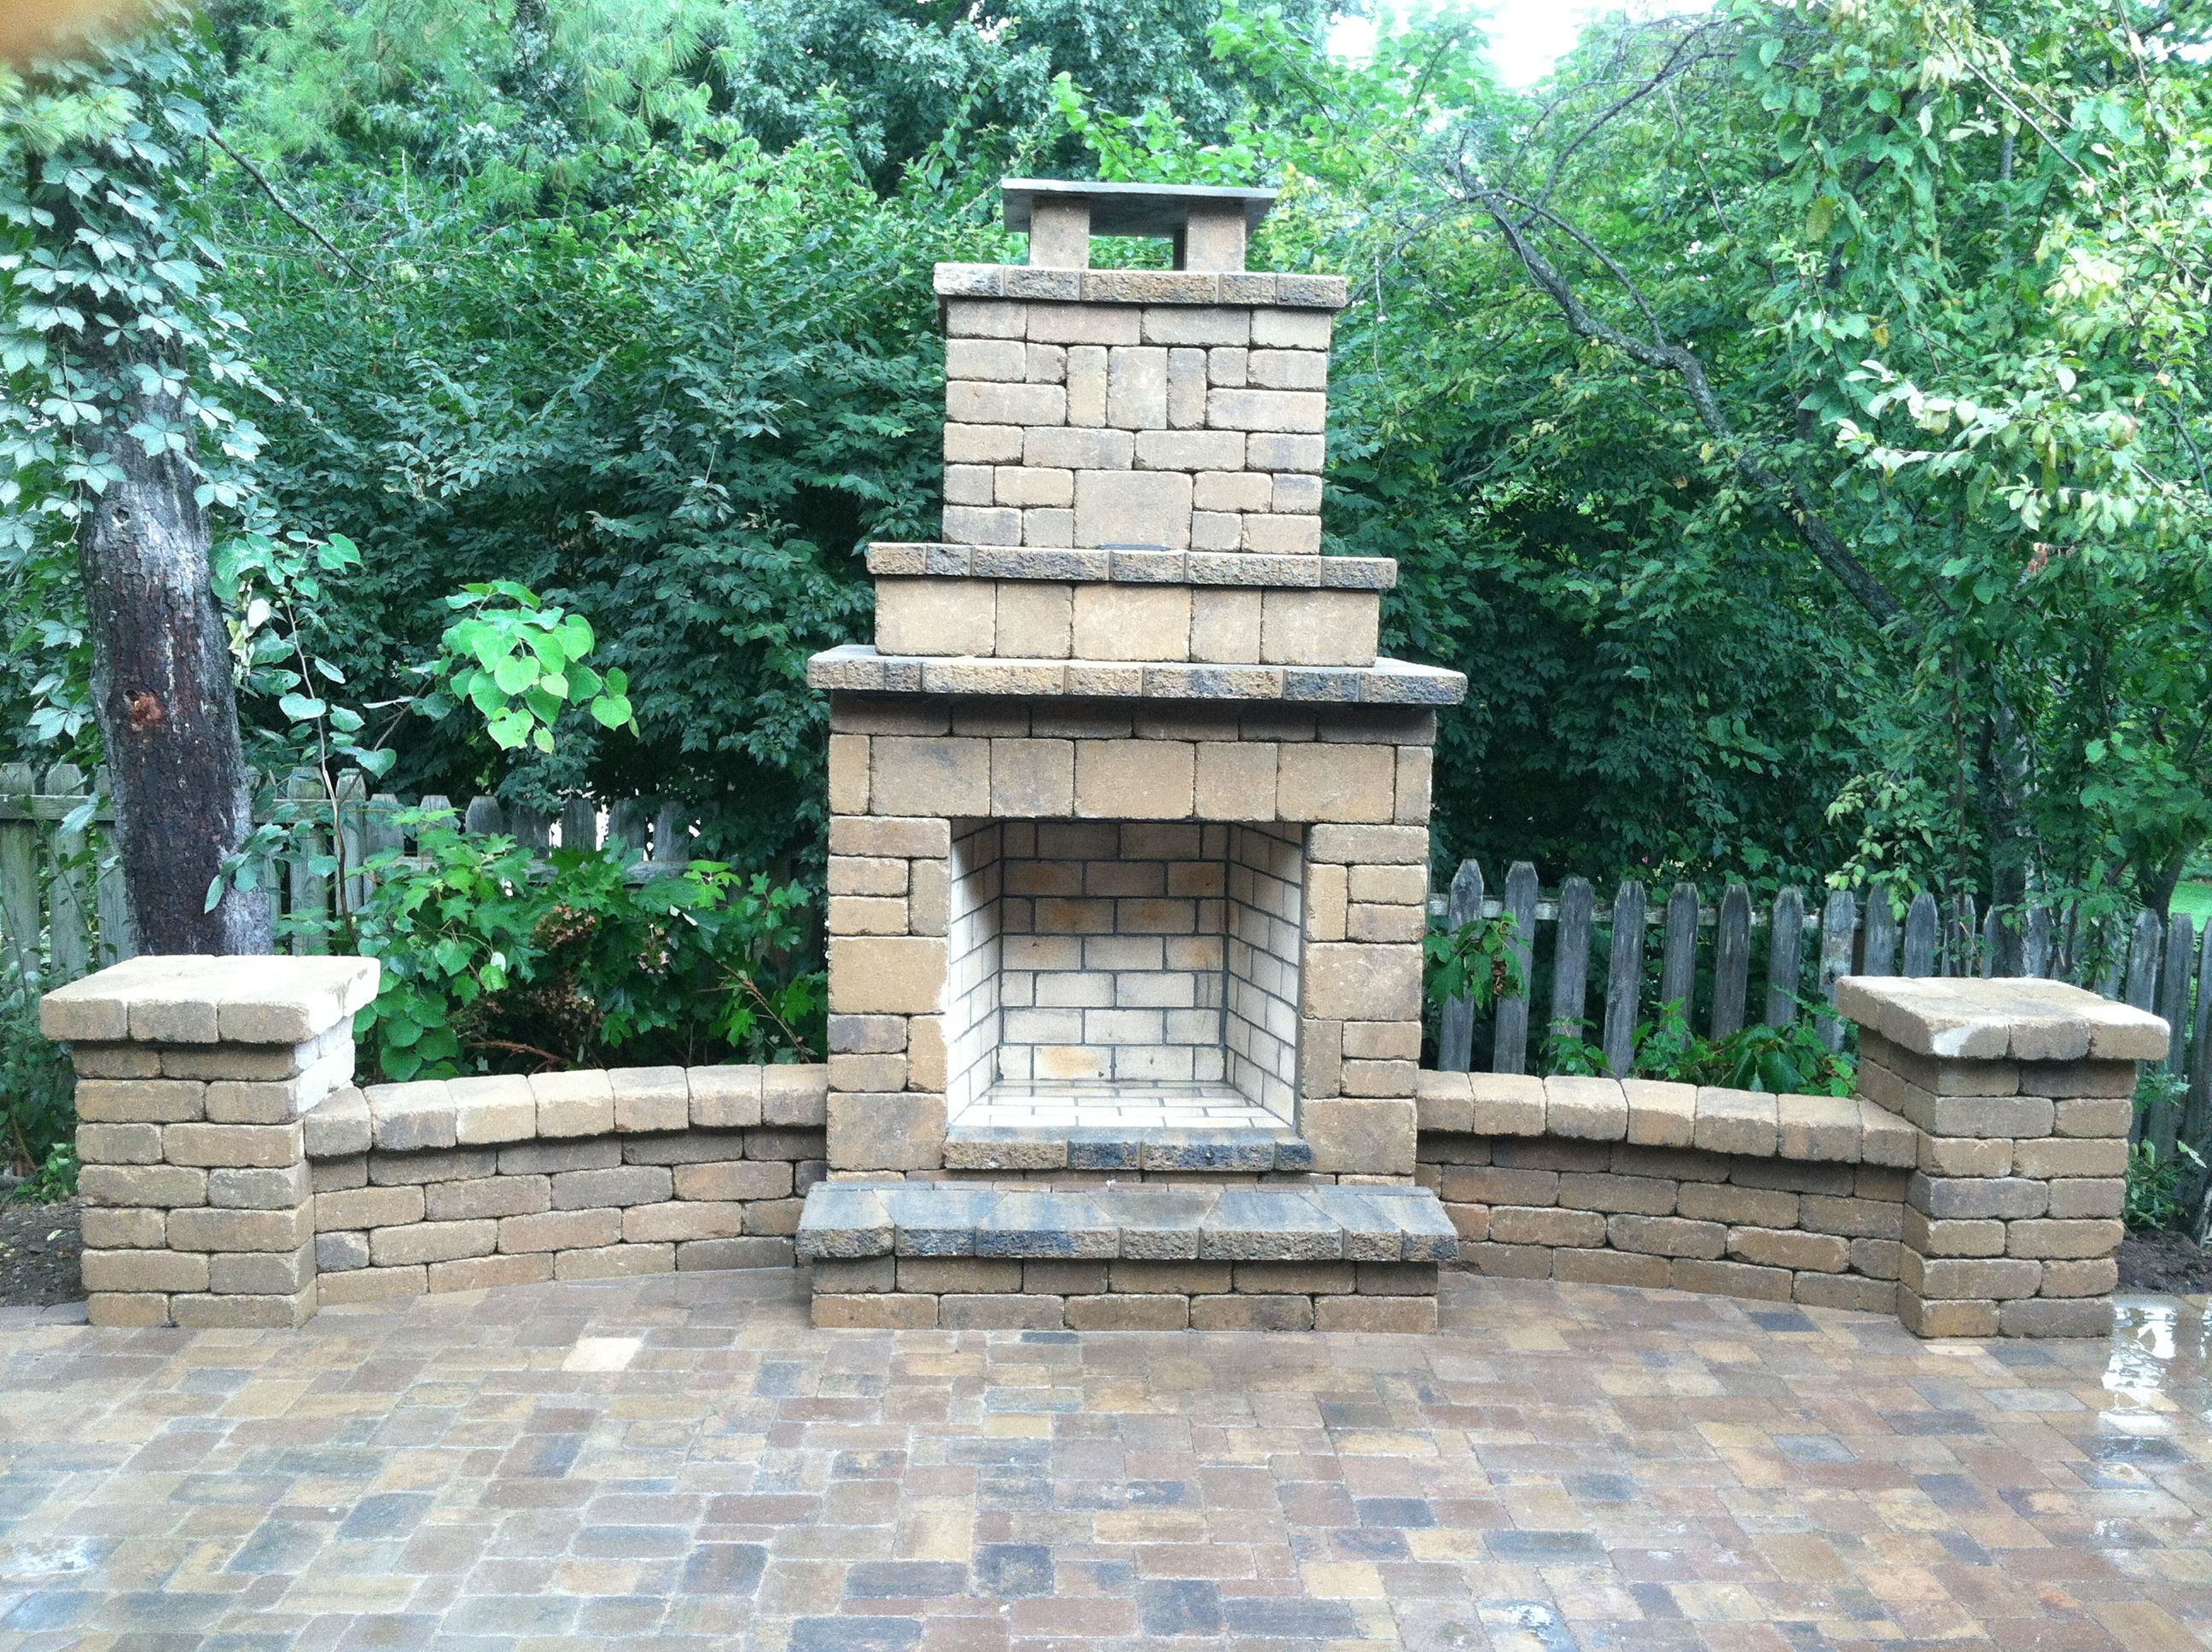 Of Outdoor Fireplaces Patio With Outdoor Fireplace Natural Stone Around The Fire And